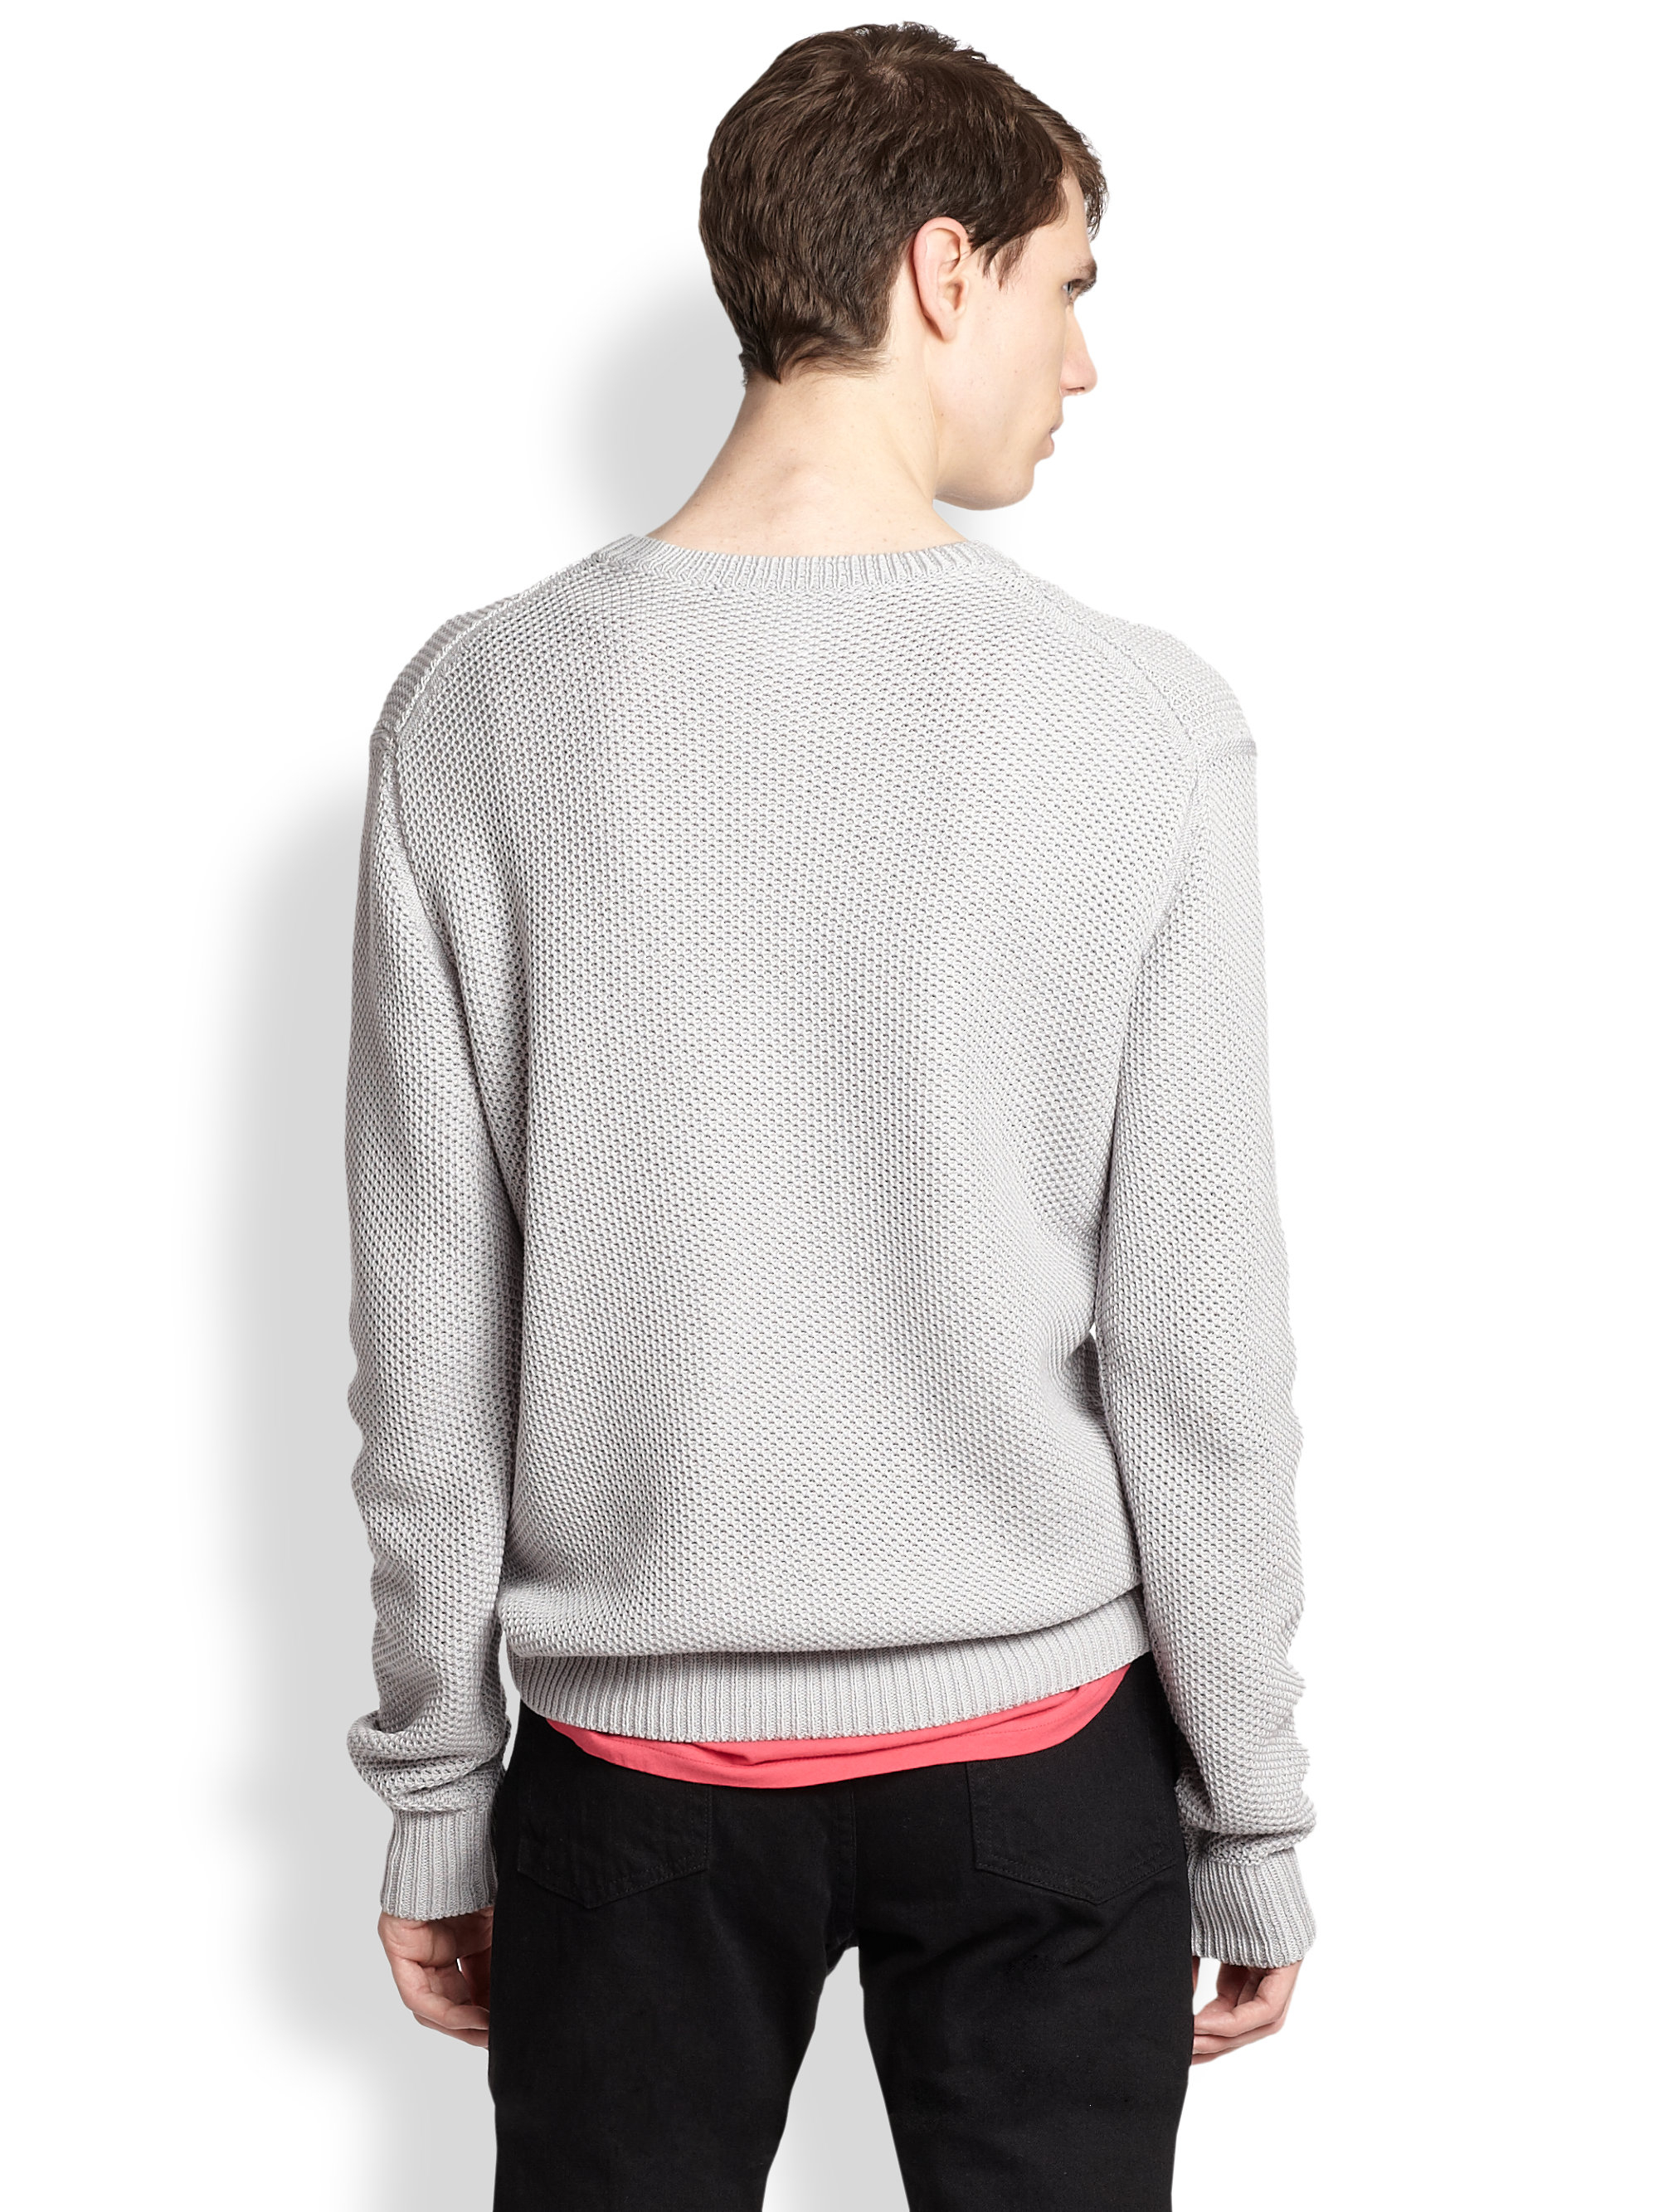 marc by marc jacobs textured chase sweater in gray for men lyst. Black Bedroom Furniture Sets. Home Design Ideas